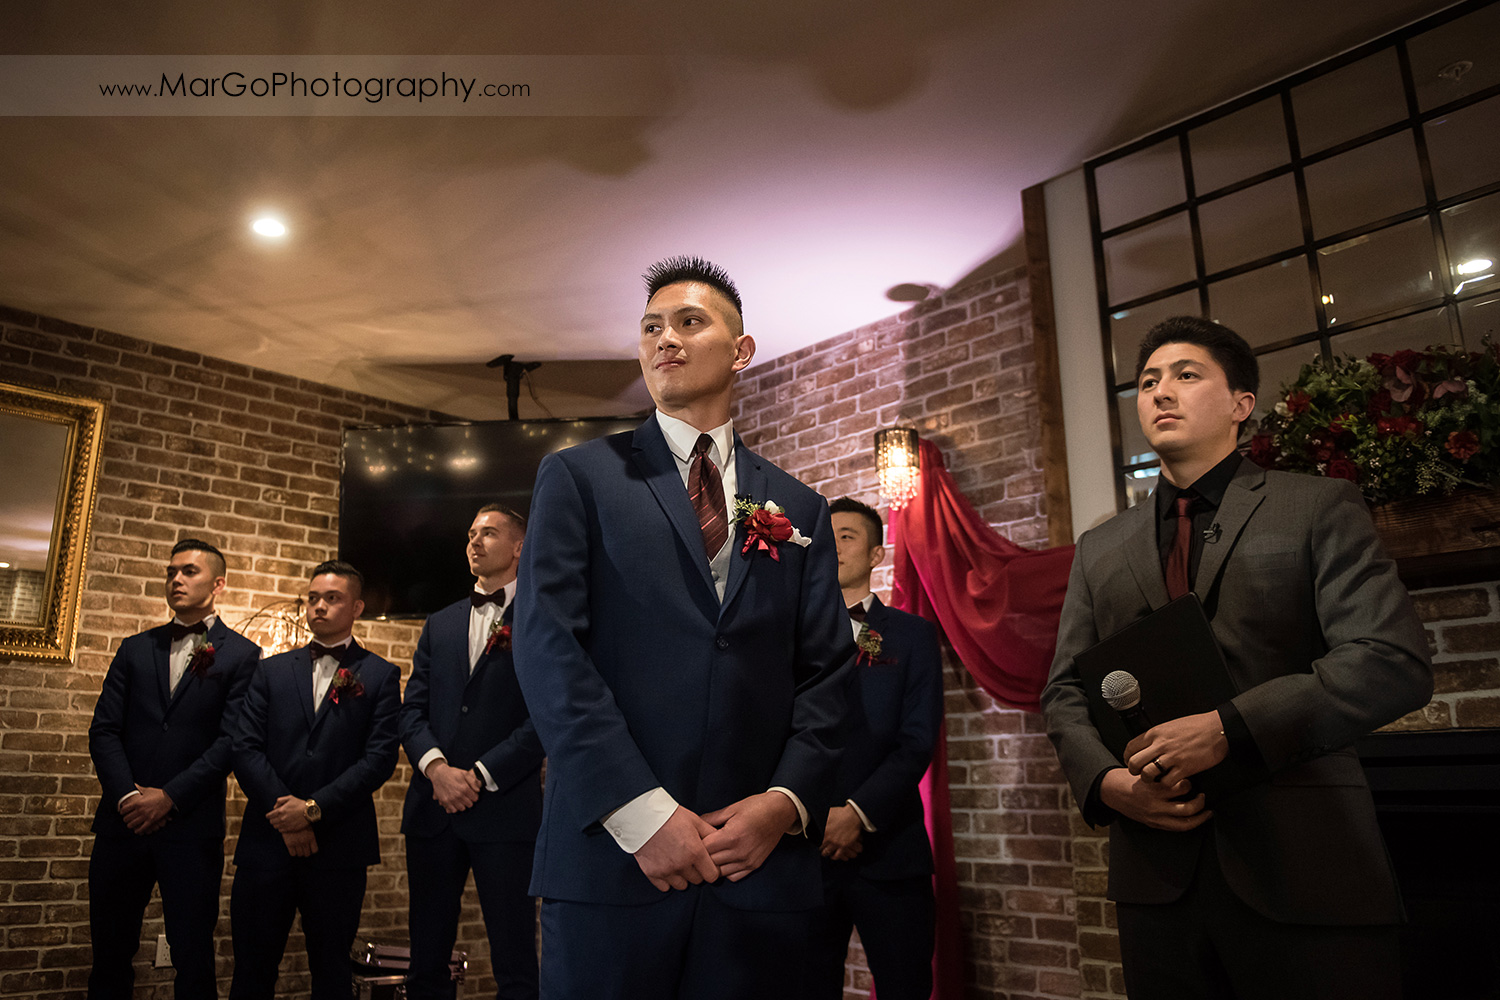 groom waiting for the bride during wedding ceremony at Sunol's Casa Bella